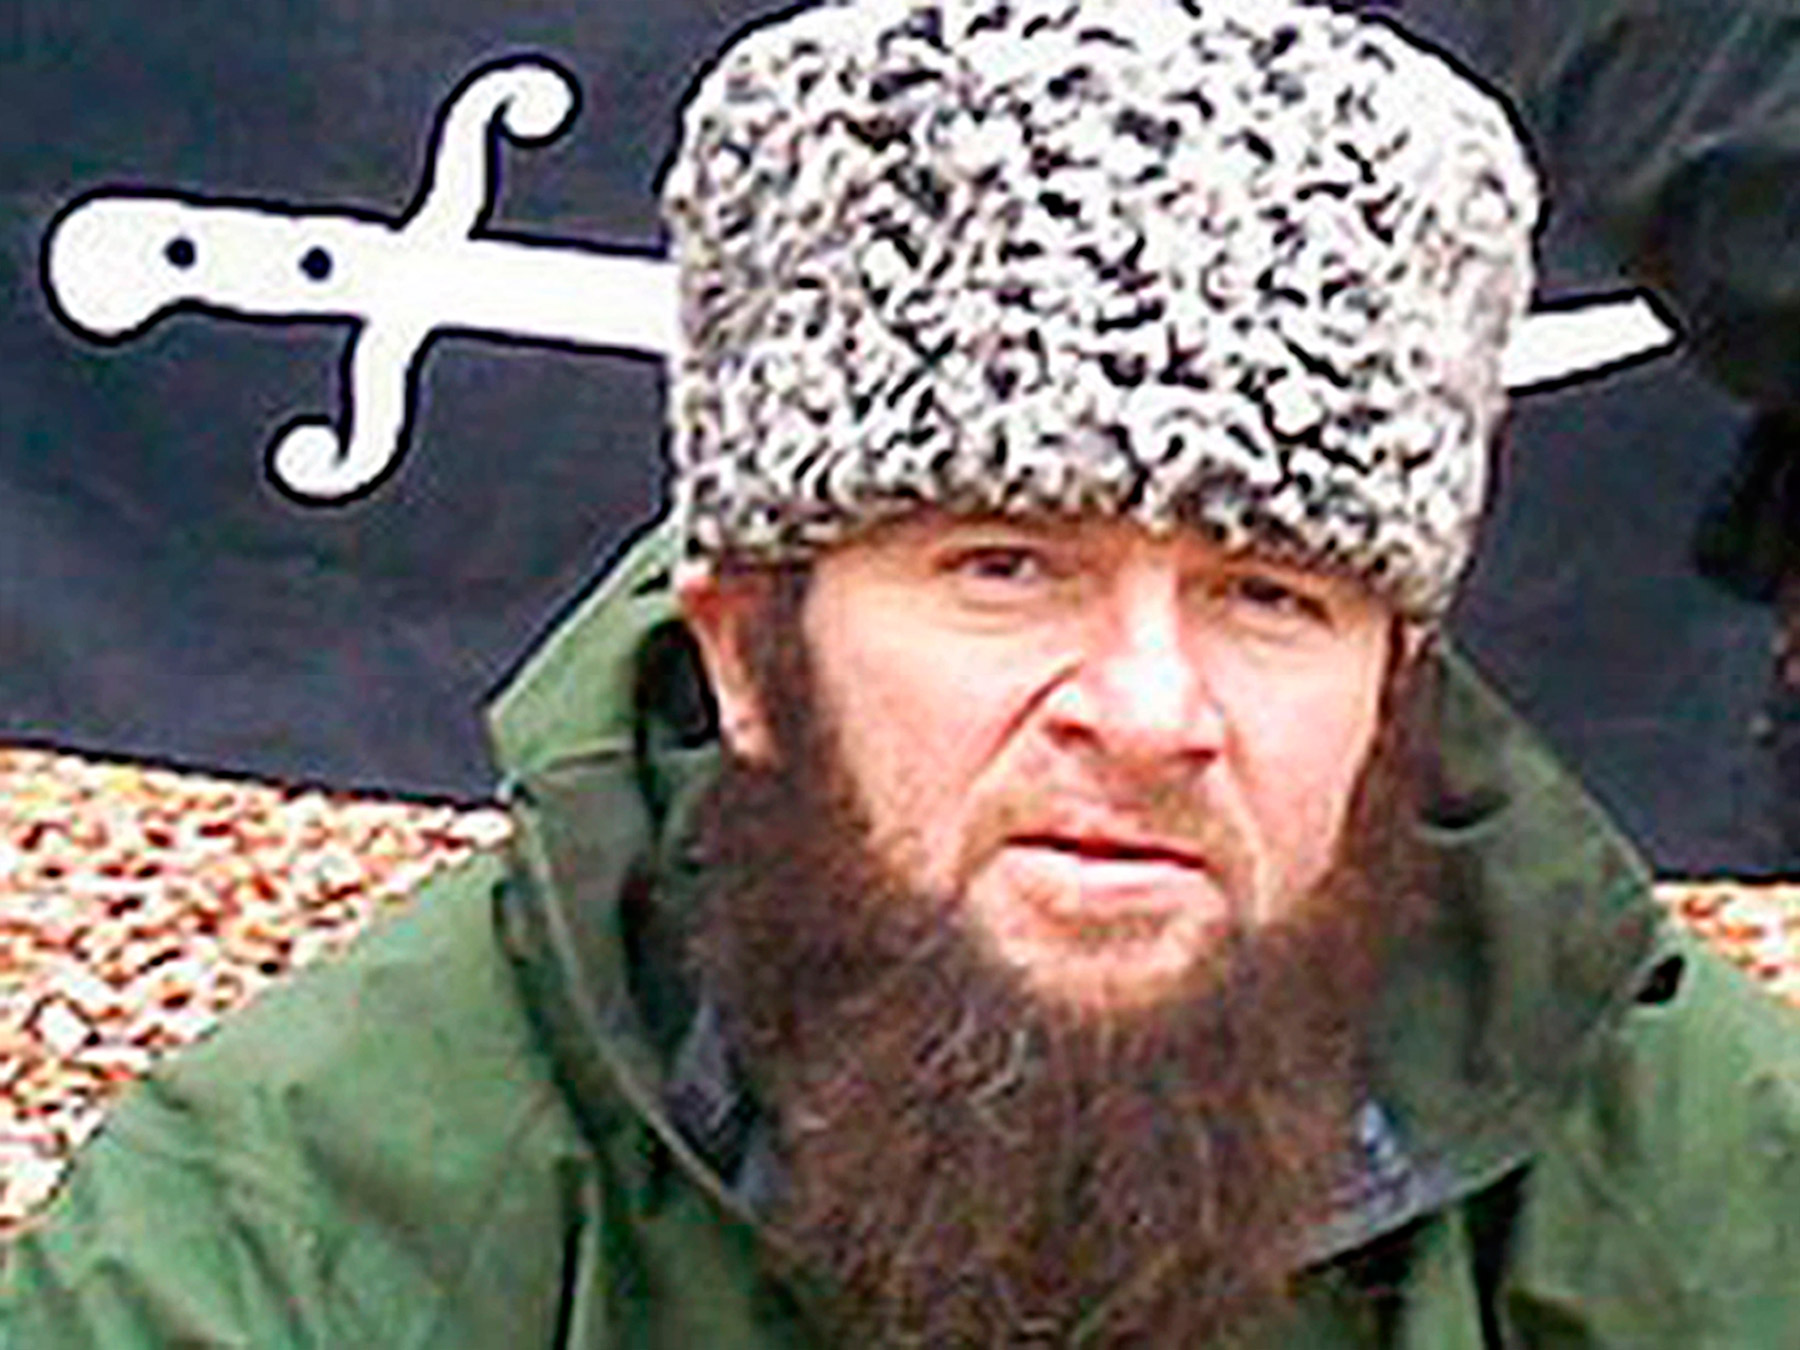 An undated photo of a man identified as Chechen separatist leader Doku Umarov